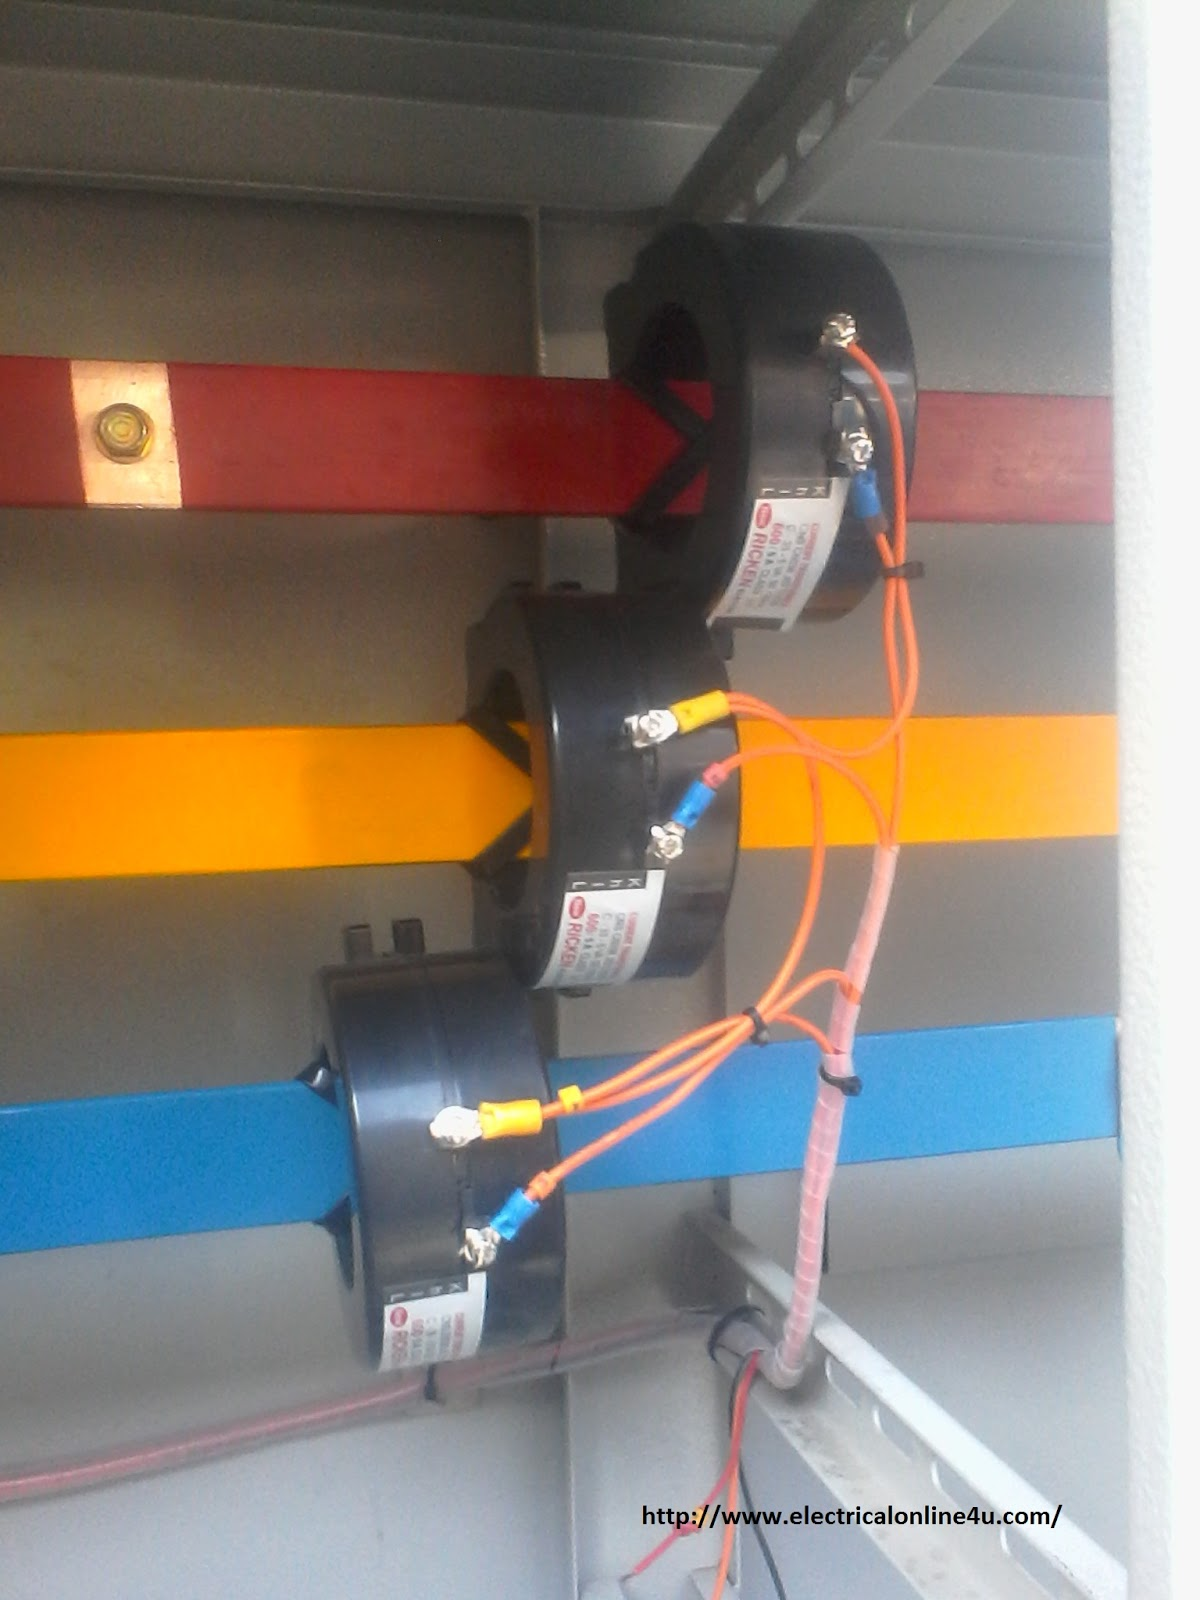 current%2Btransformer%2Binstillation%2Bfor%2Bthree%2Bphase%2Bwiring current transformer installation for three phase power supply ct Basic Electrical Wiring Diagrams at couponss.co